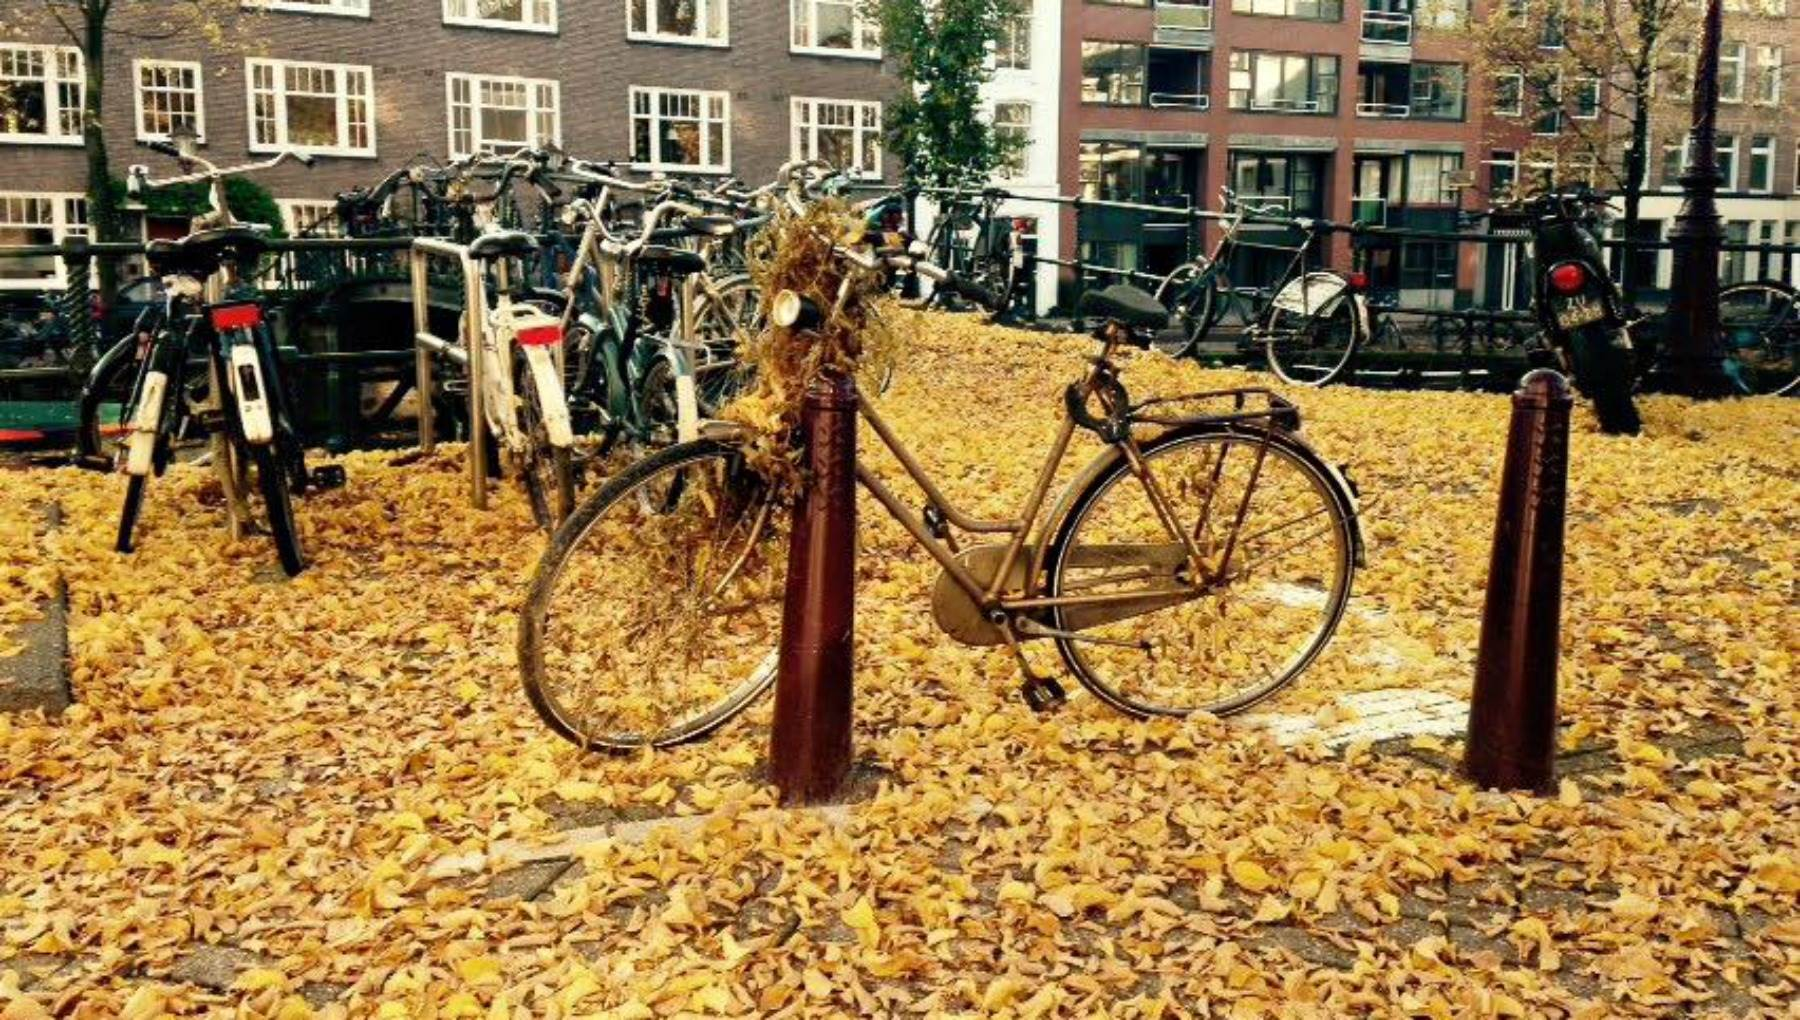 10 reasons to visit amsterdam in autumn | i amsterdam